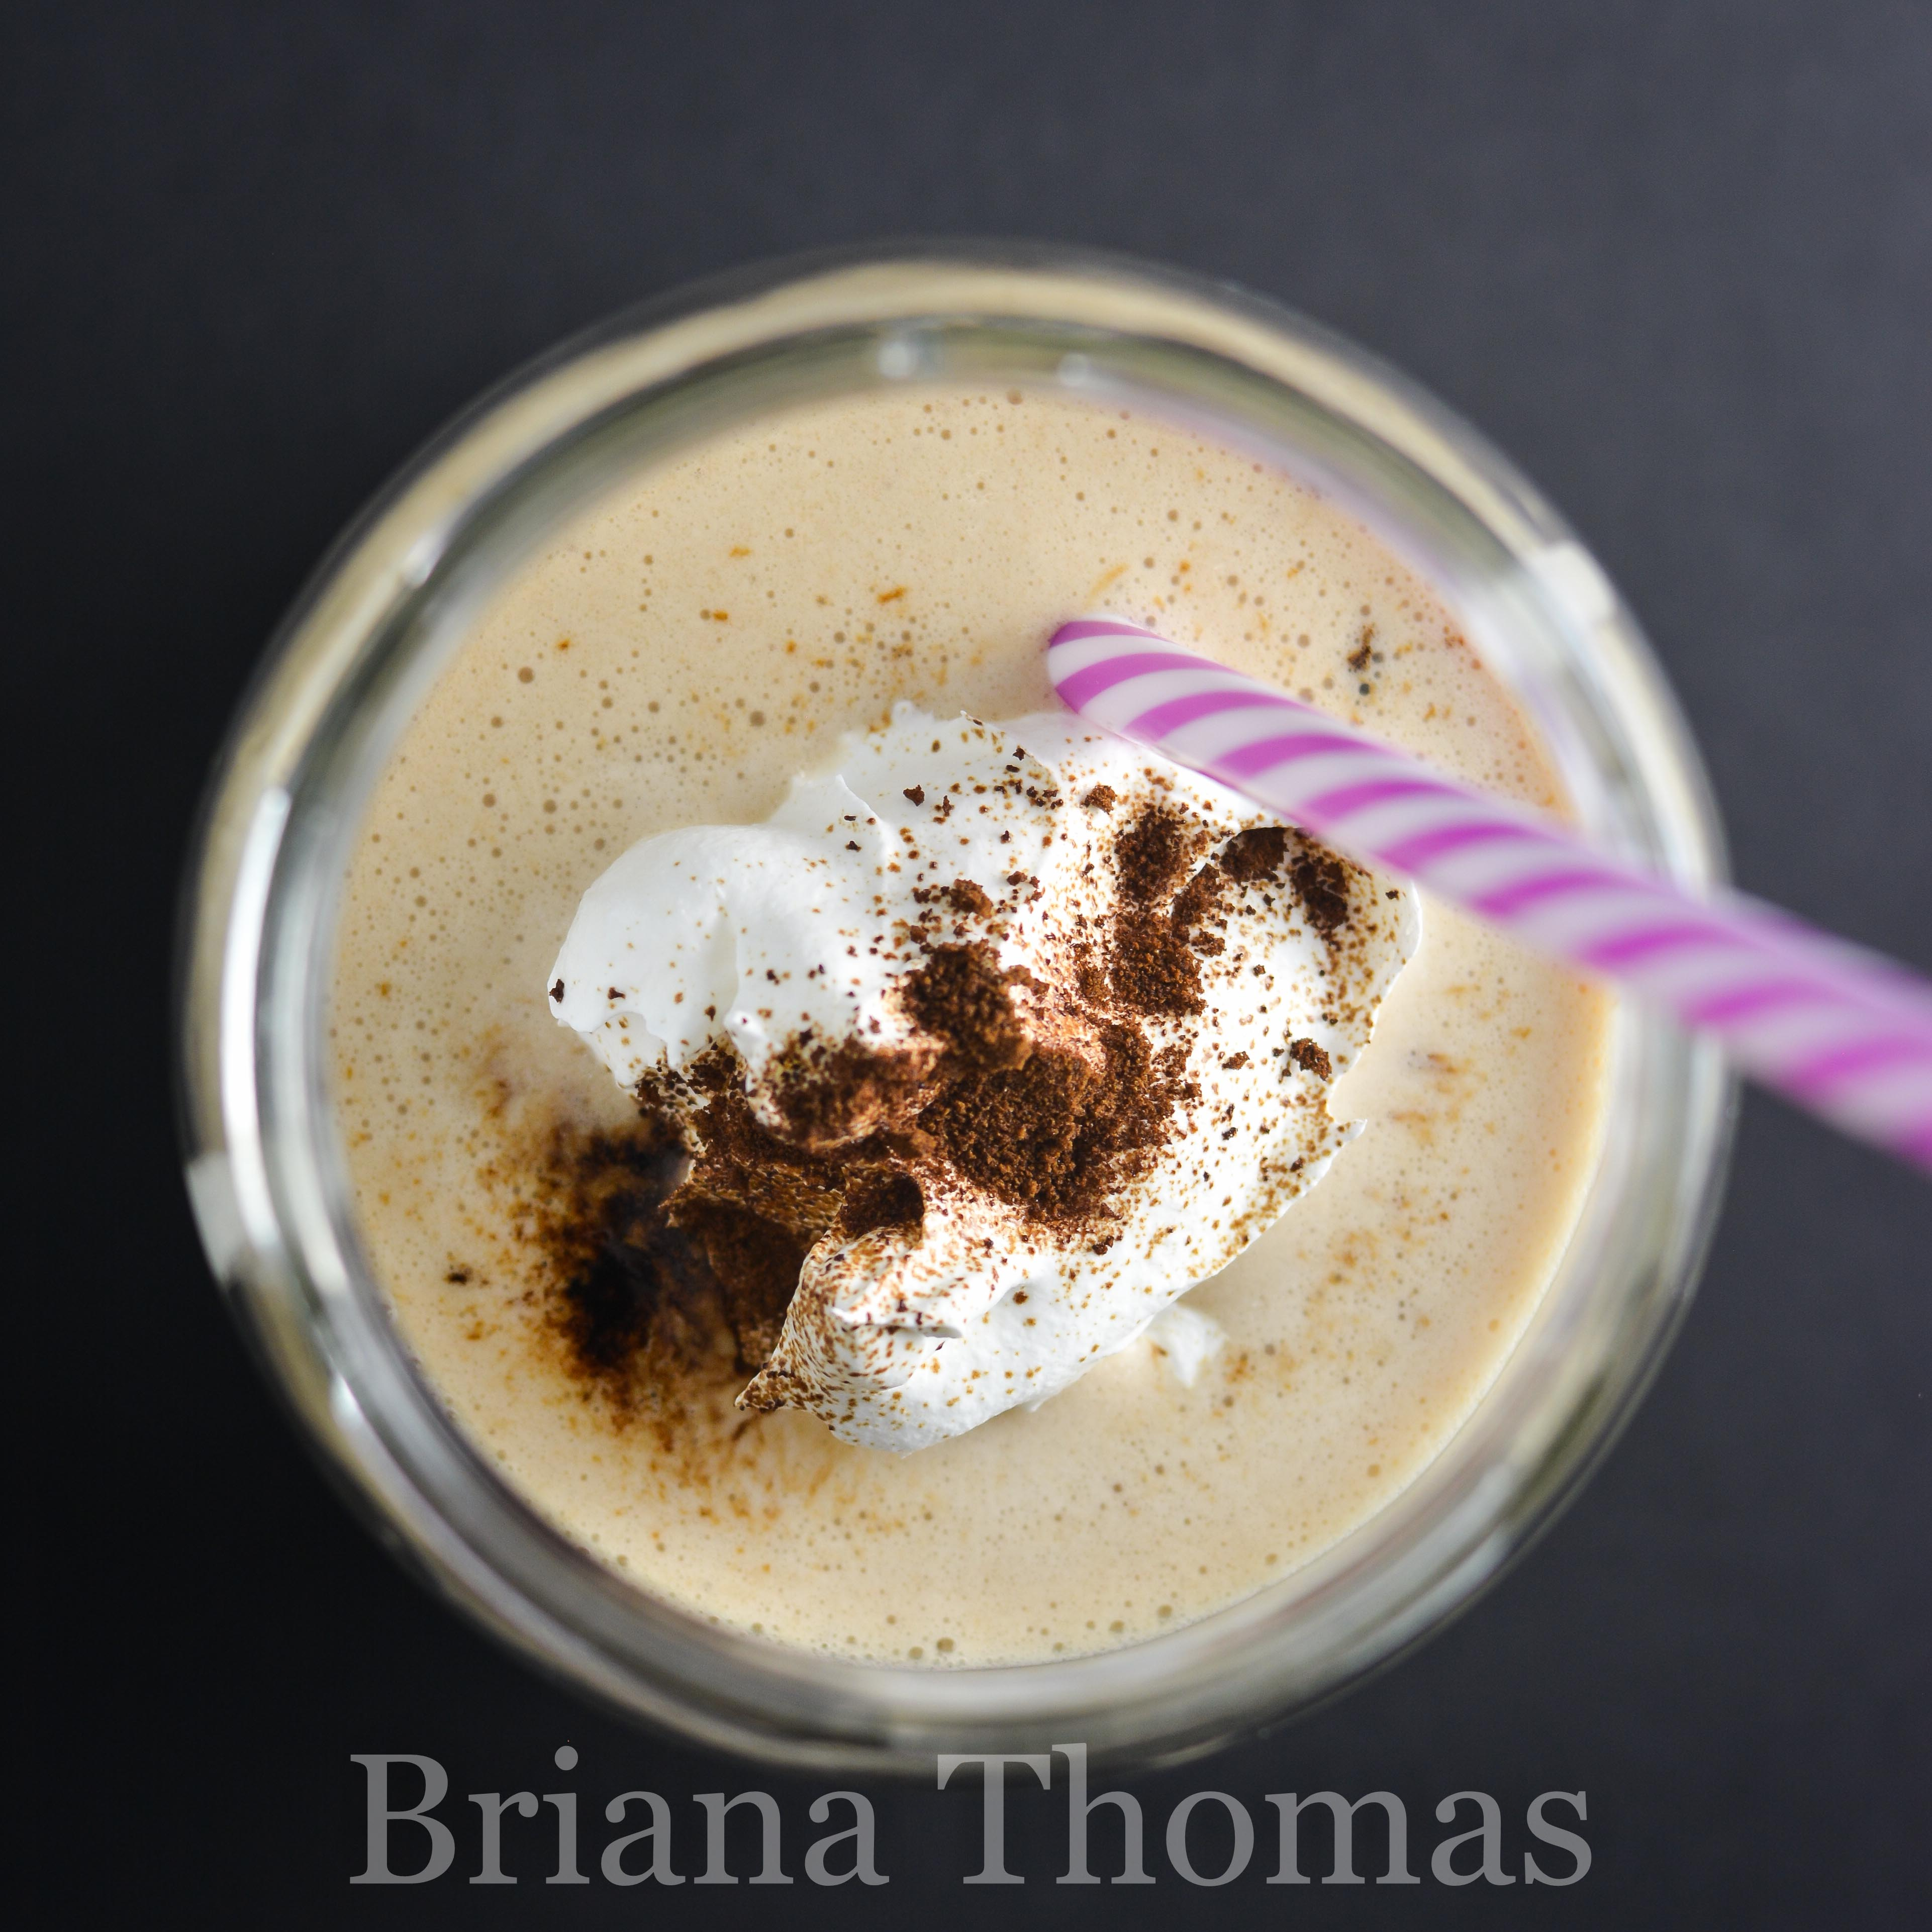 This delicious vanilla frappe is a cheaper, far healthier version of Starbucks! THM:FP, low carb, low fat, sugar free, gluten/egg/dairy/nut free